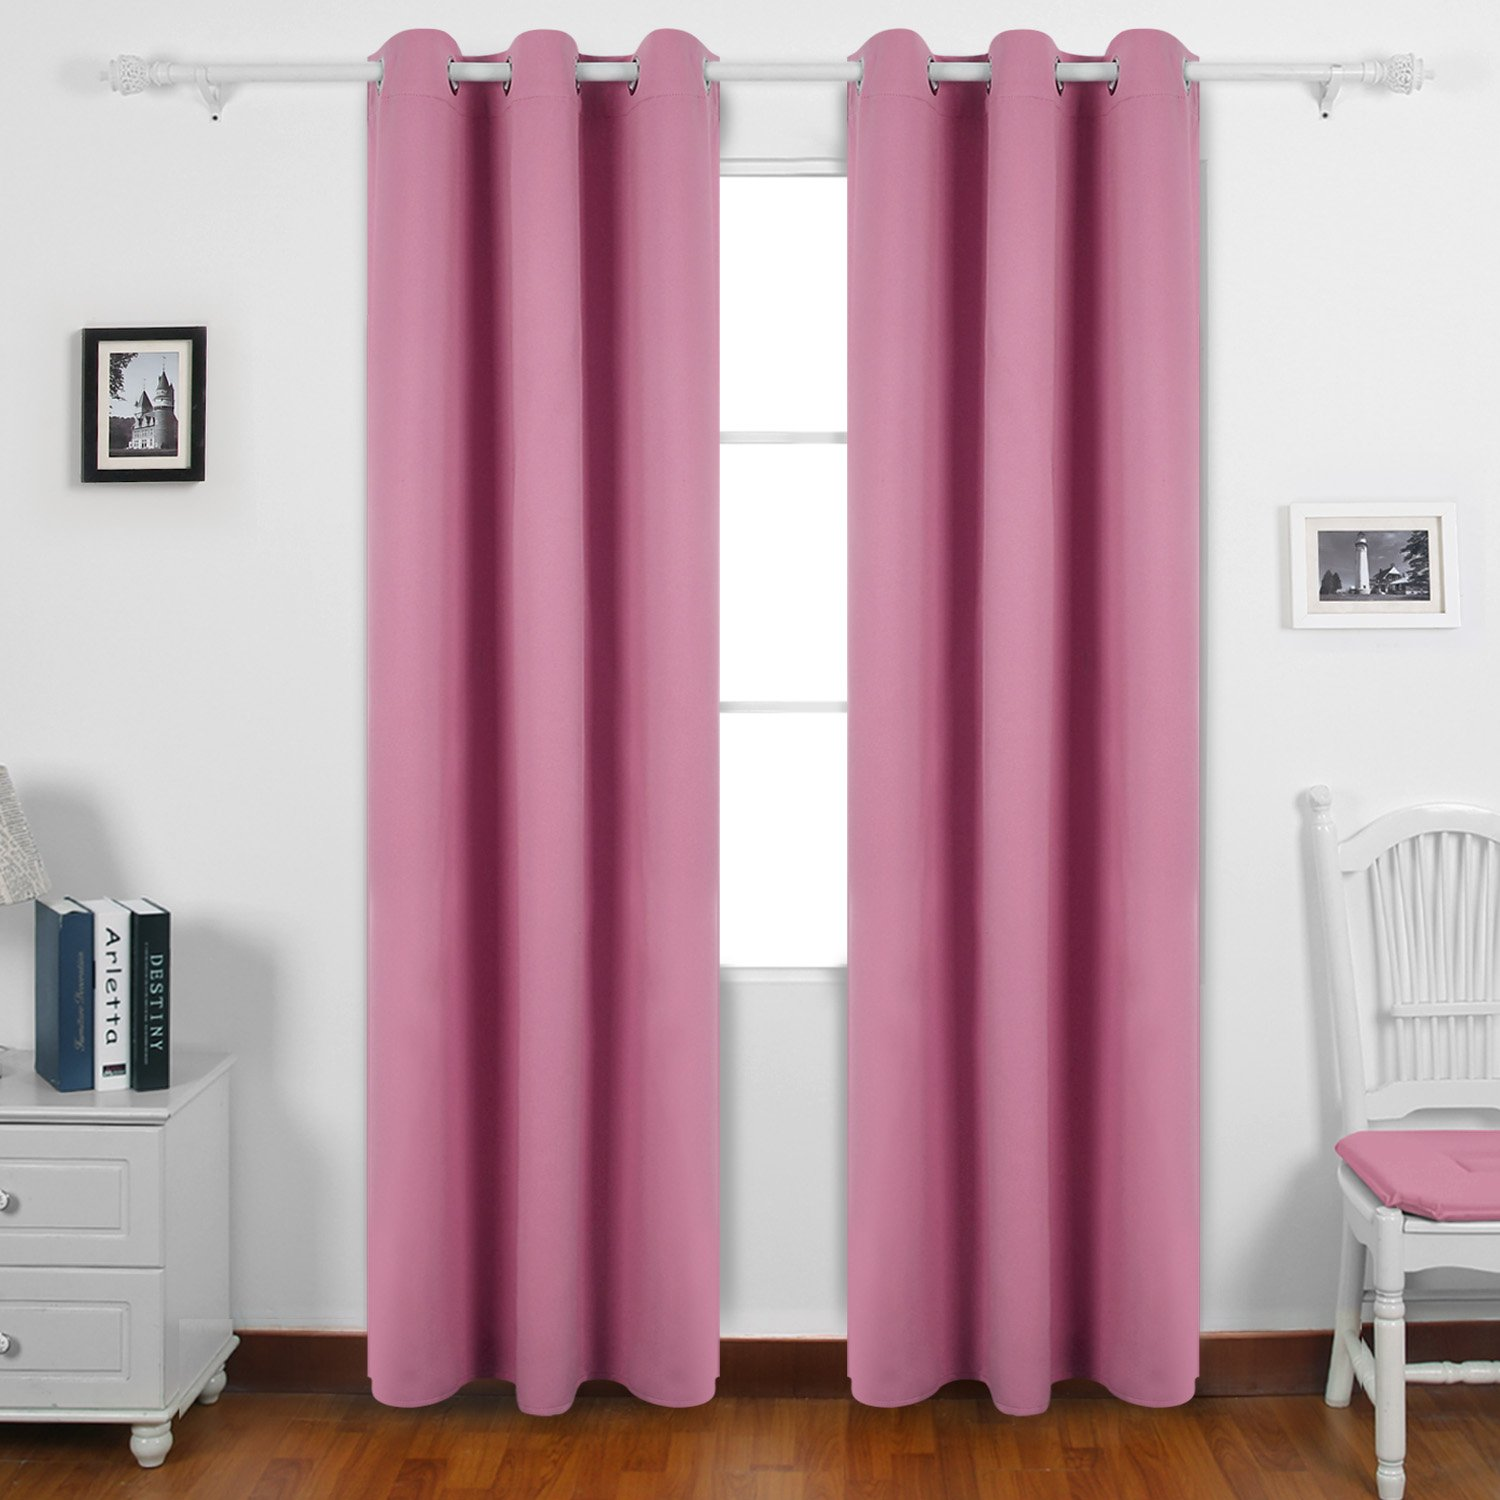 Deconovo Room Darkening Thermal Insulated Blackout Grommet Window Curtains For Bedroom Sets Pink